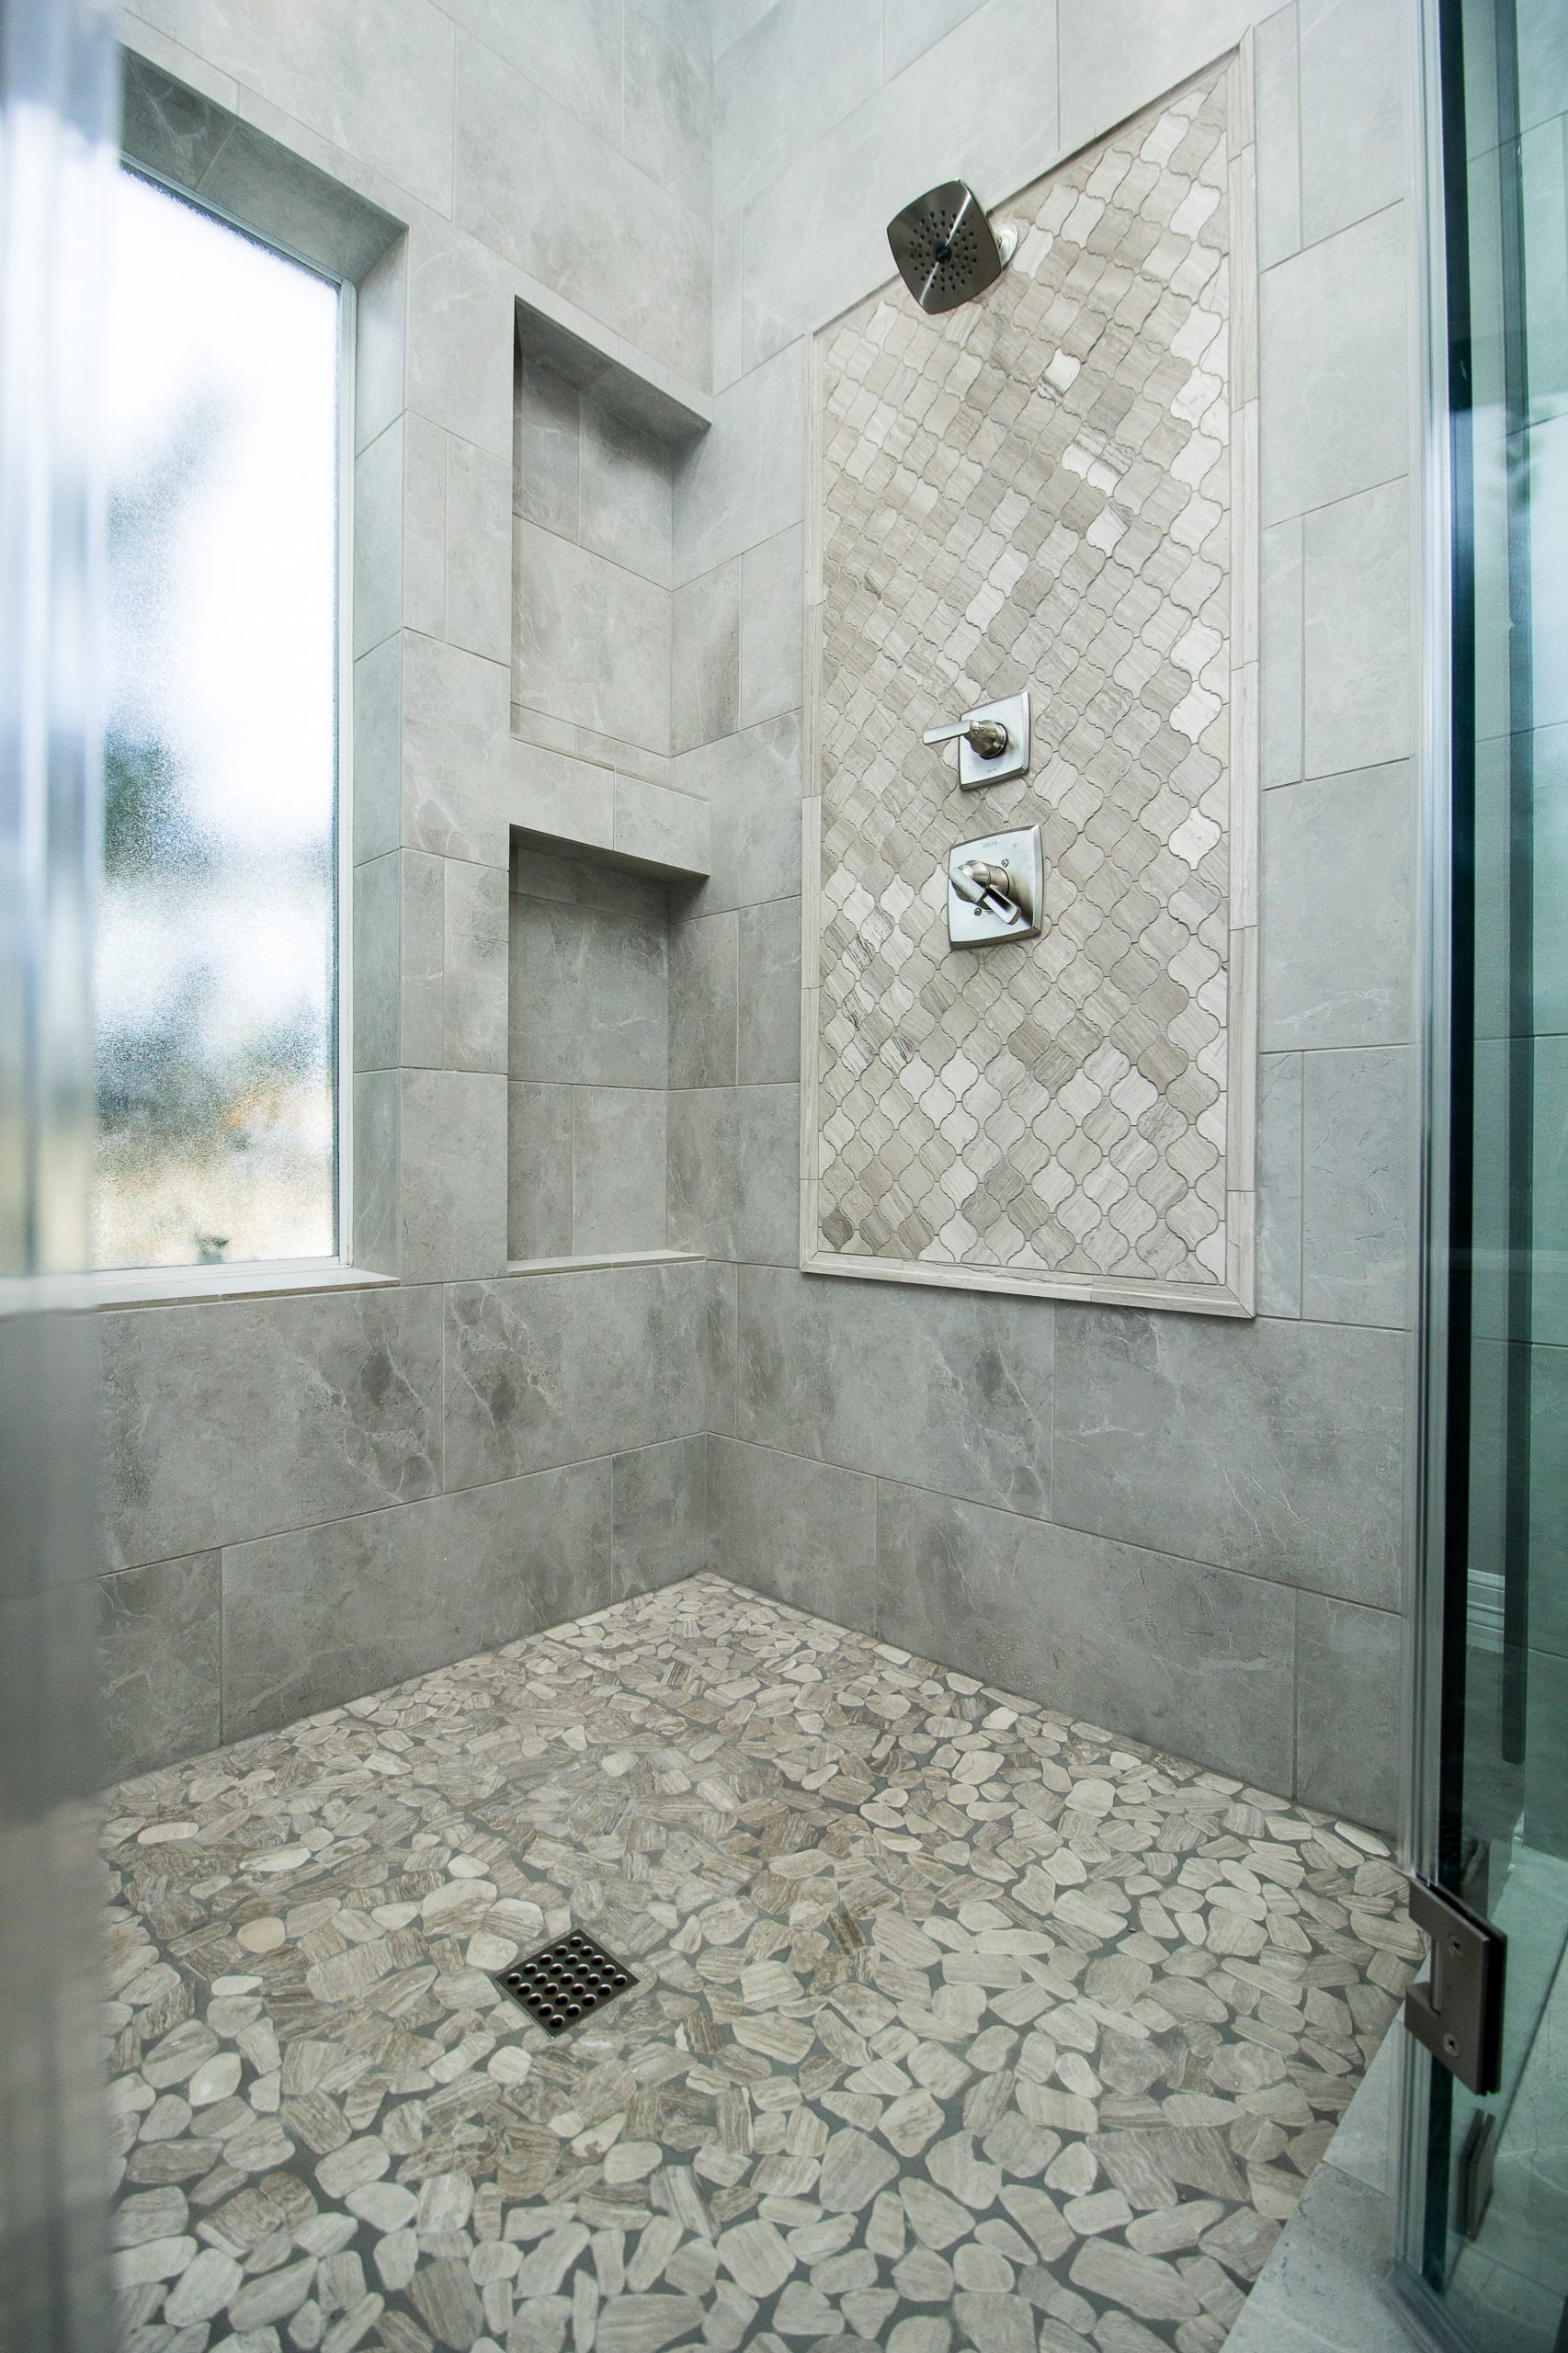 Bathroom Remodeling in Carson, CA